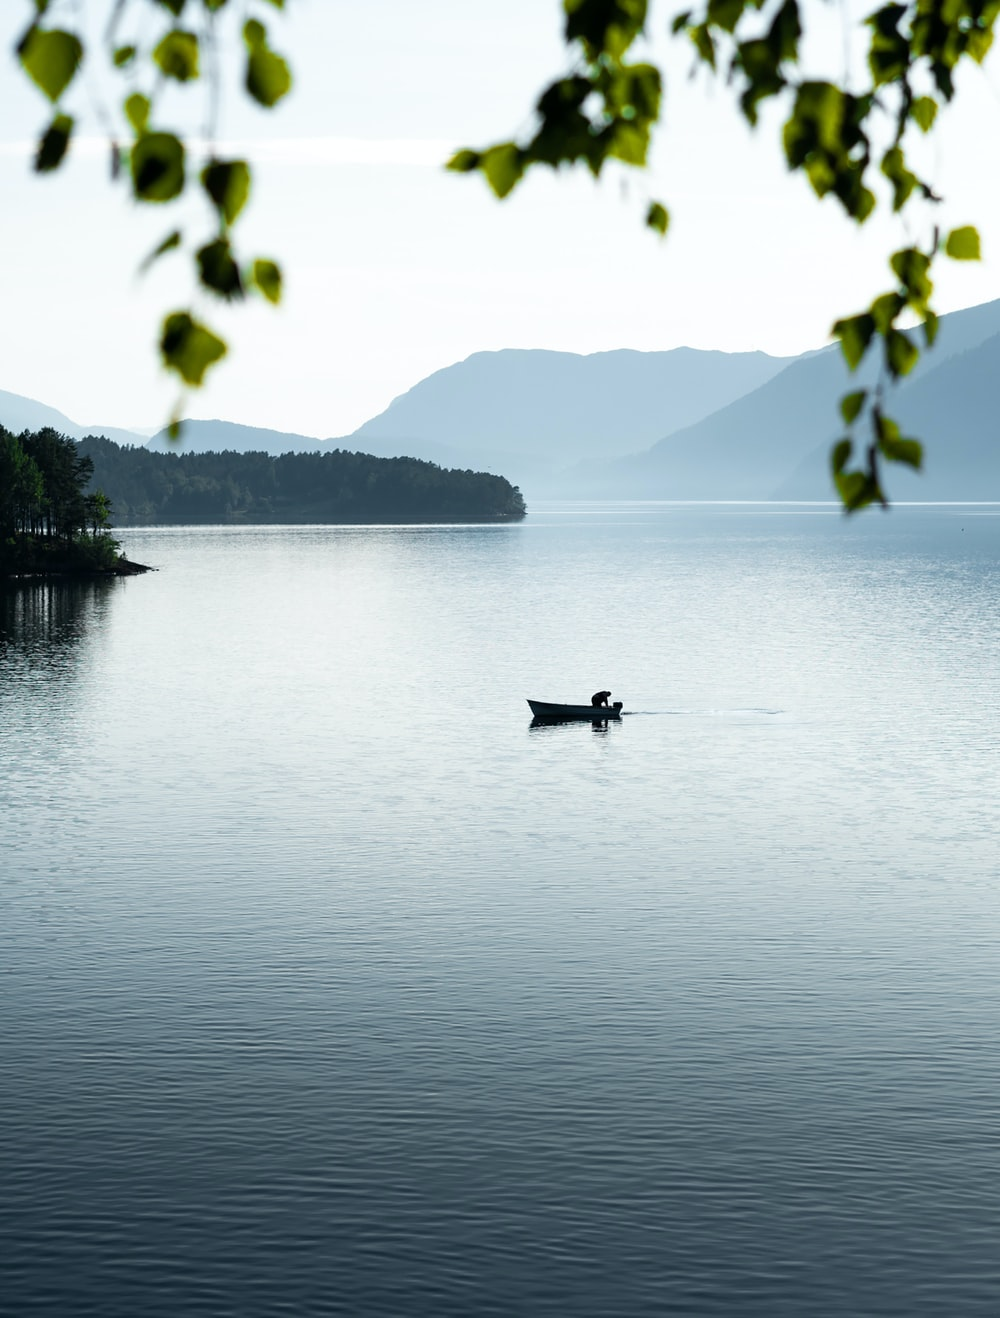 person in black shirt riding on boat on lake during daytime